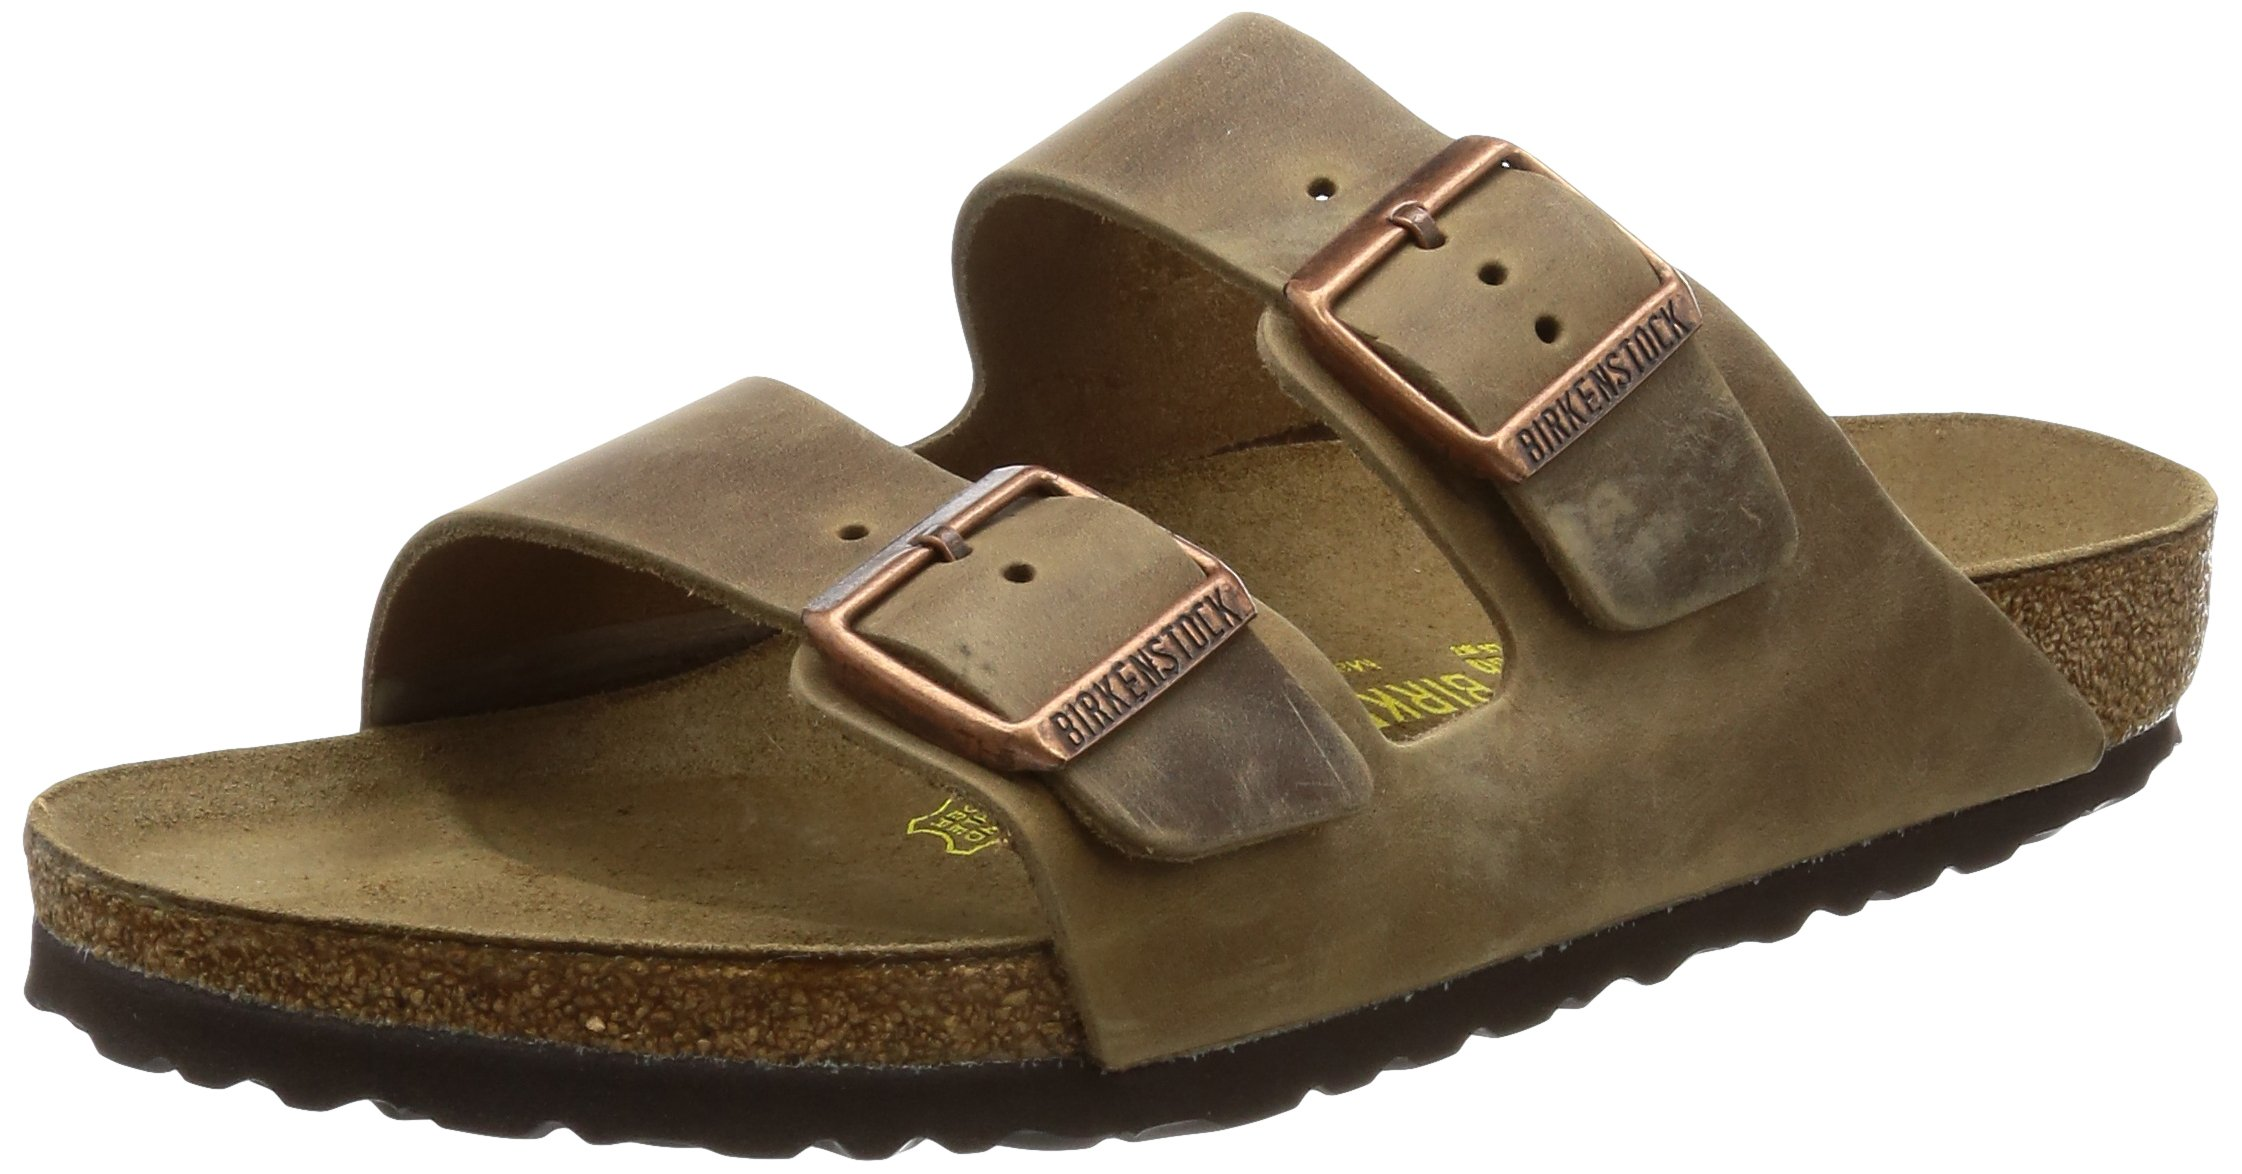 Birkenstock Unisex Arizona Sandal,Waxy Leather Tobacco Brown,40 M EU